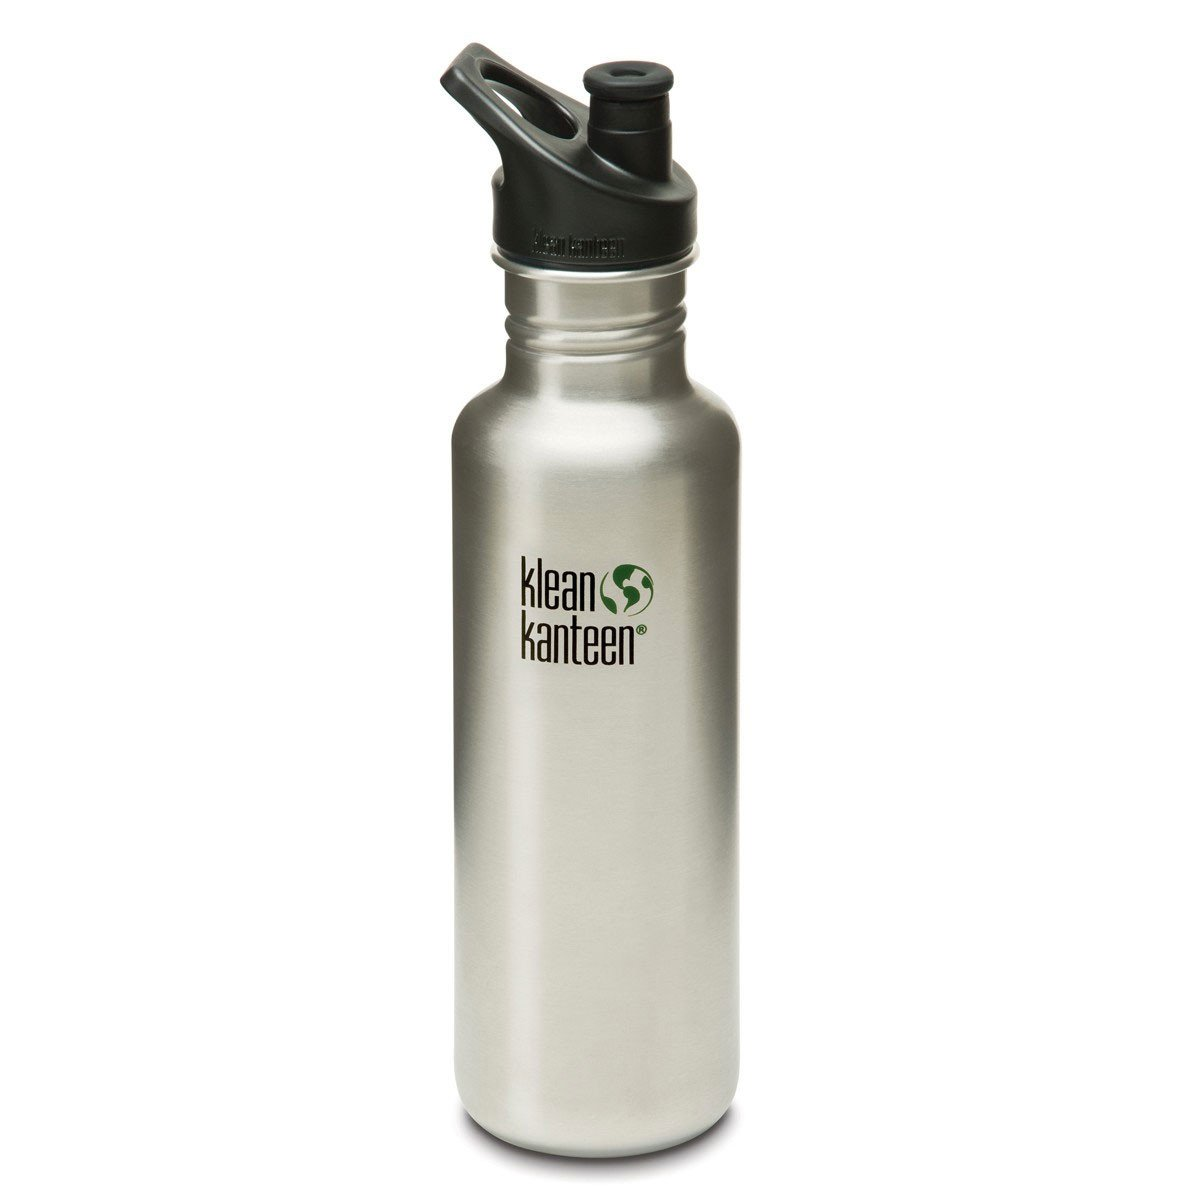 Klean Kanteen Stainless Steel Classic Water Bottle Klean Kanteen Water Bottles 800ml 27oz / Brushed Stainless at Little Earth Nest Eco Shop